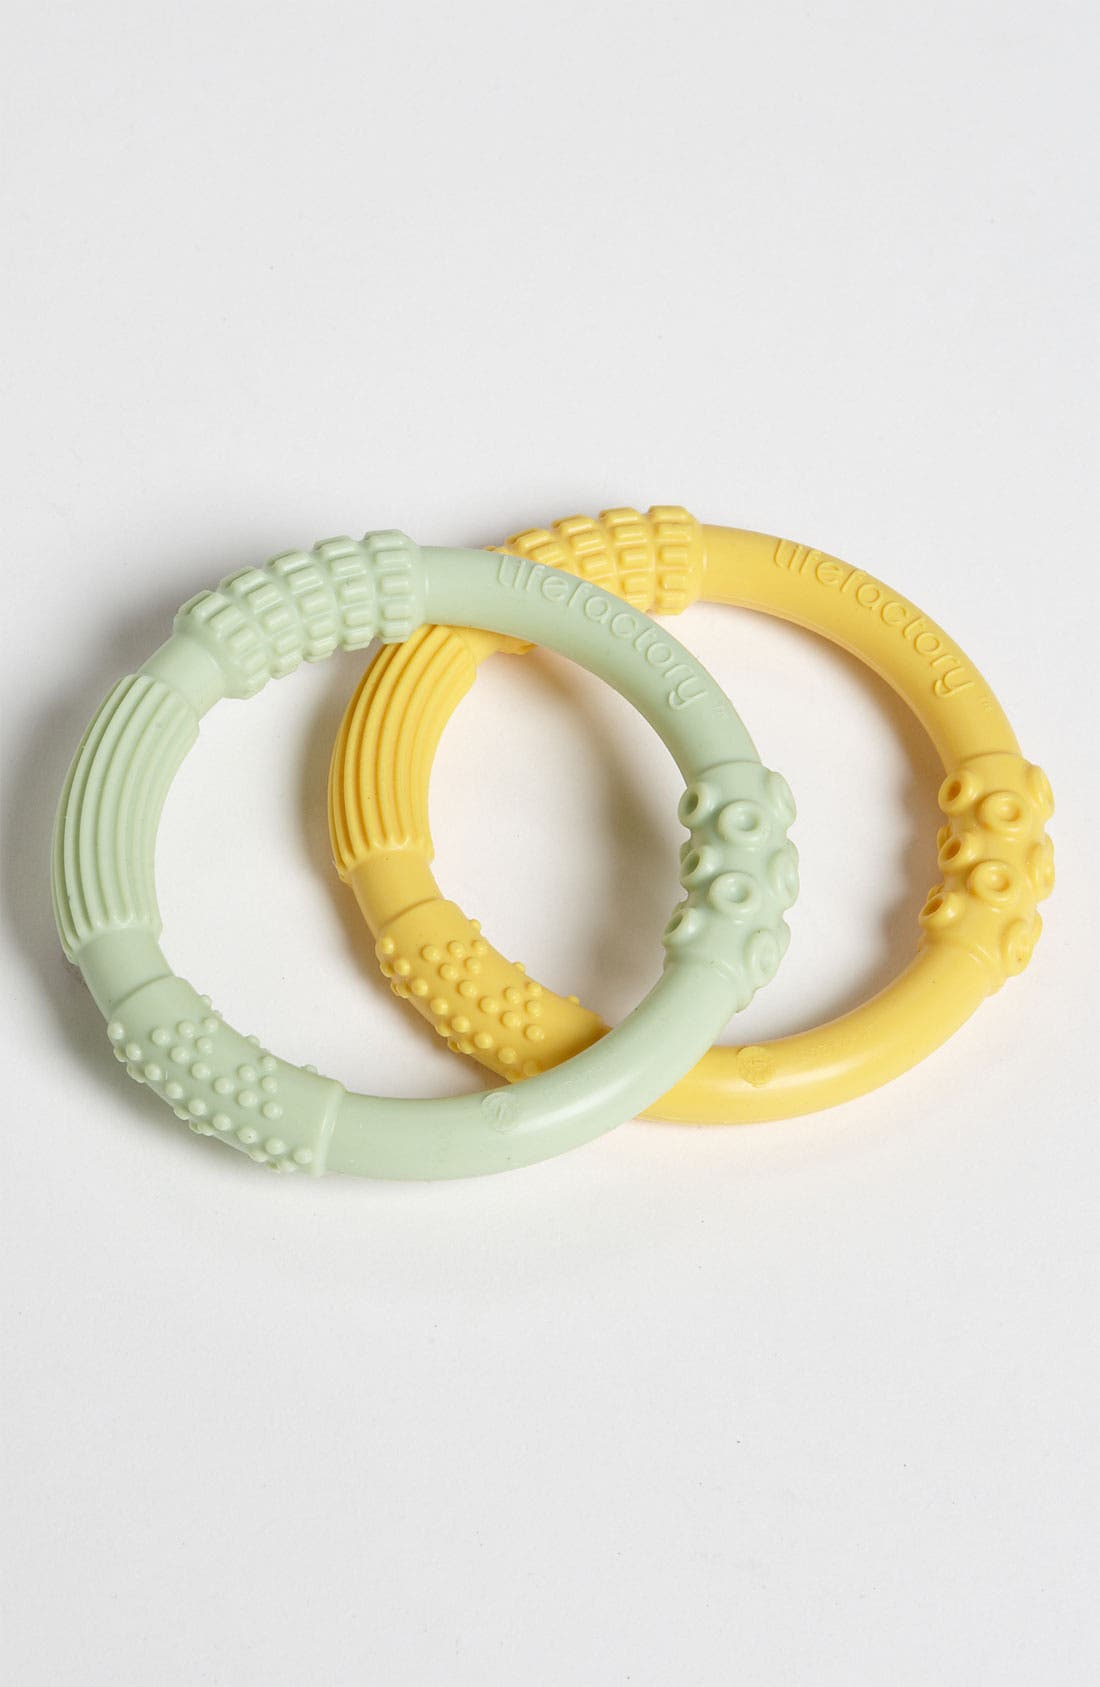 Alternate Image 1 Selected - Lifefactory Silicone Teether (2-Pack)